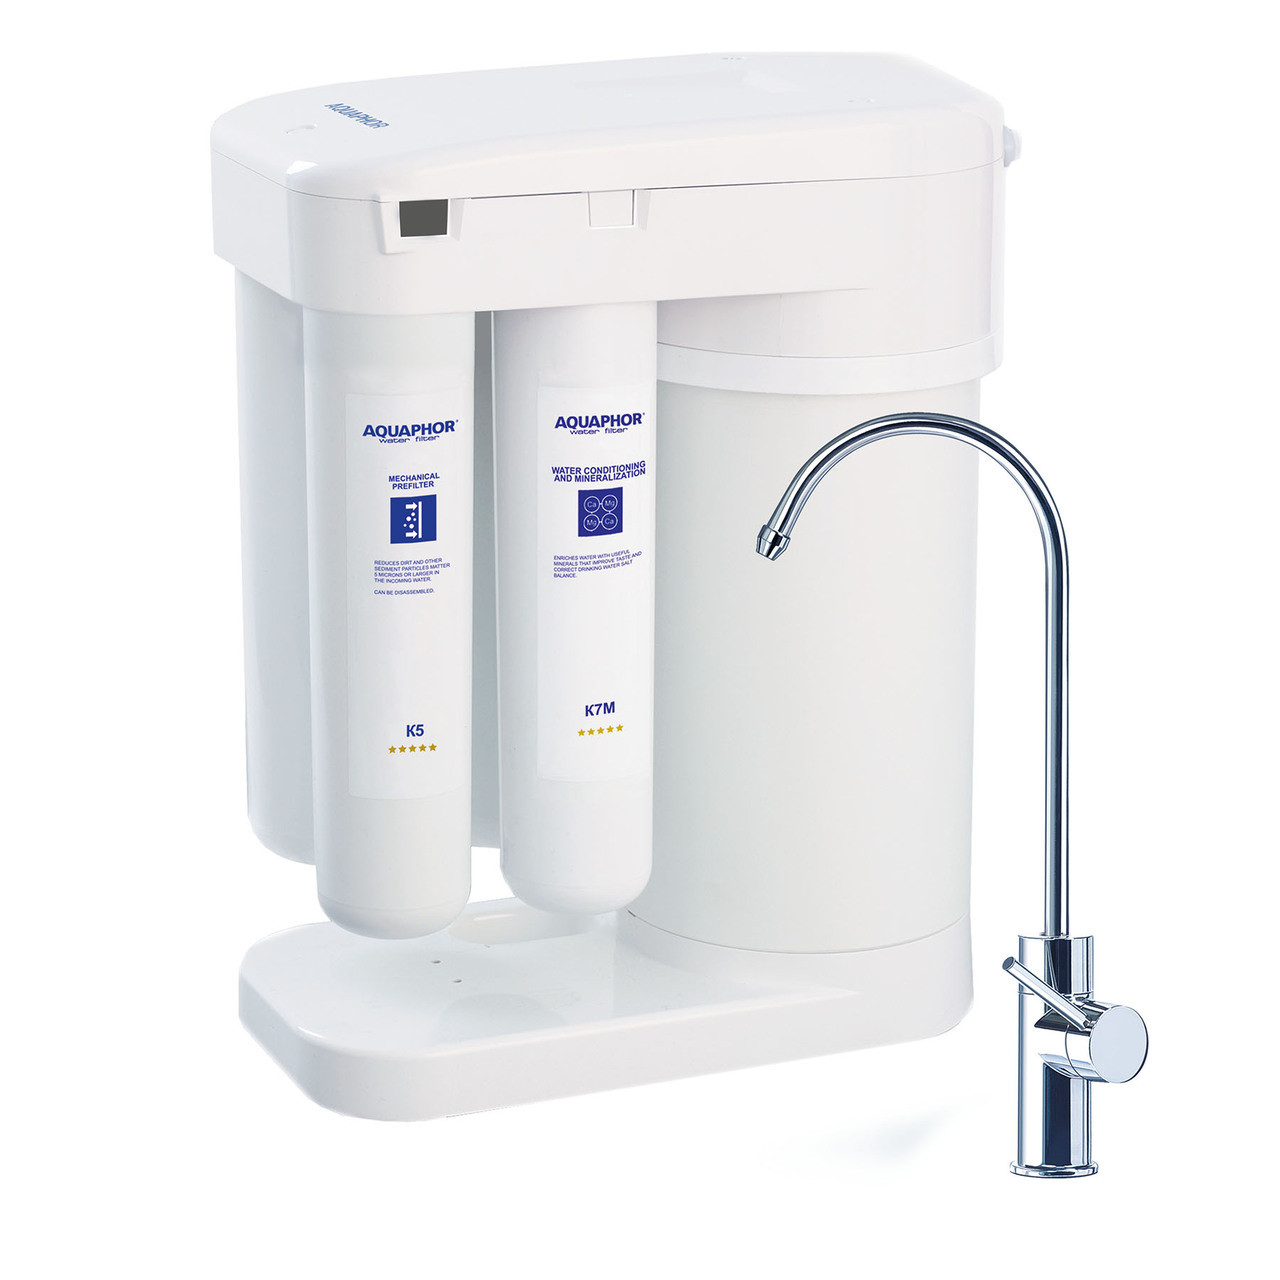 An image of a water filter